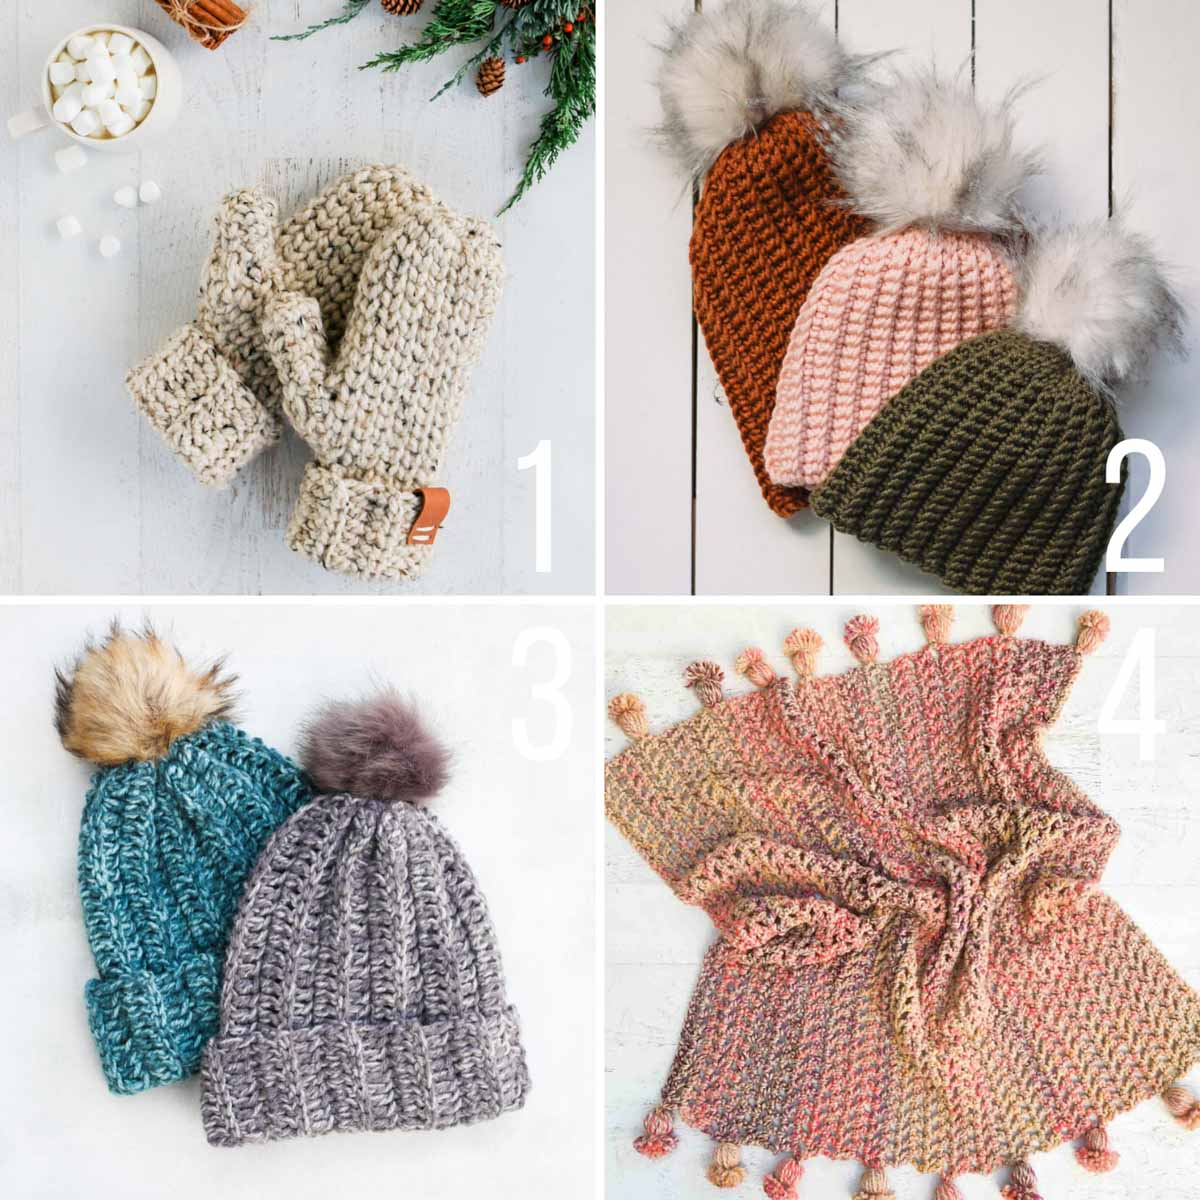 Grid of four free crochet patterns, including two very easy beanie hats, crochet mittens, and a crochet blanket with a Pom Pom border.